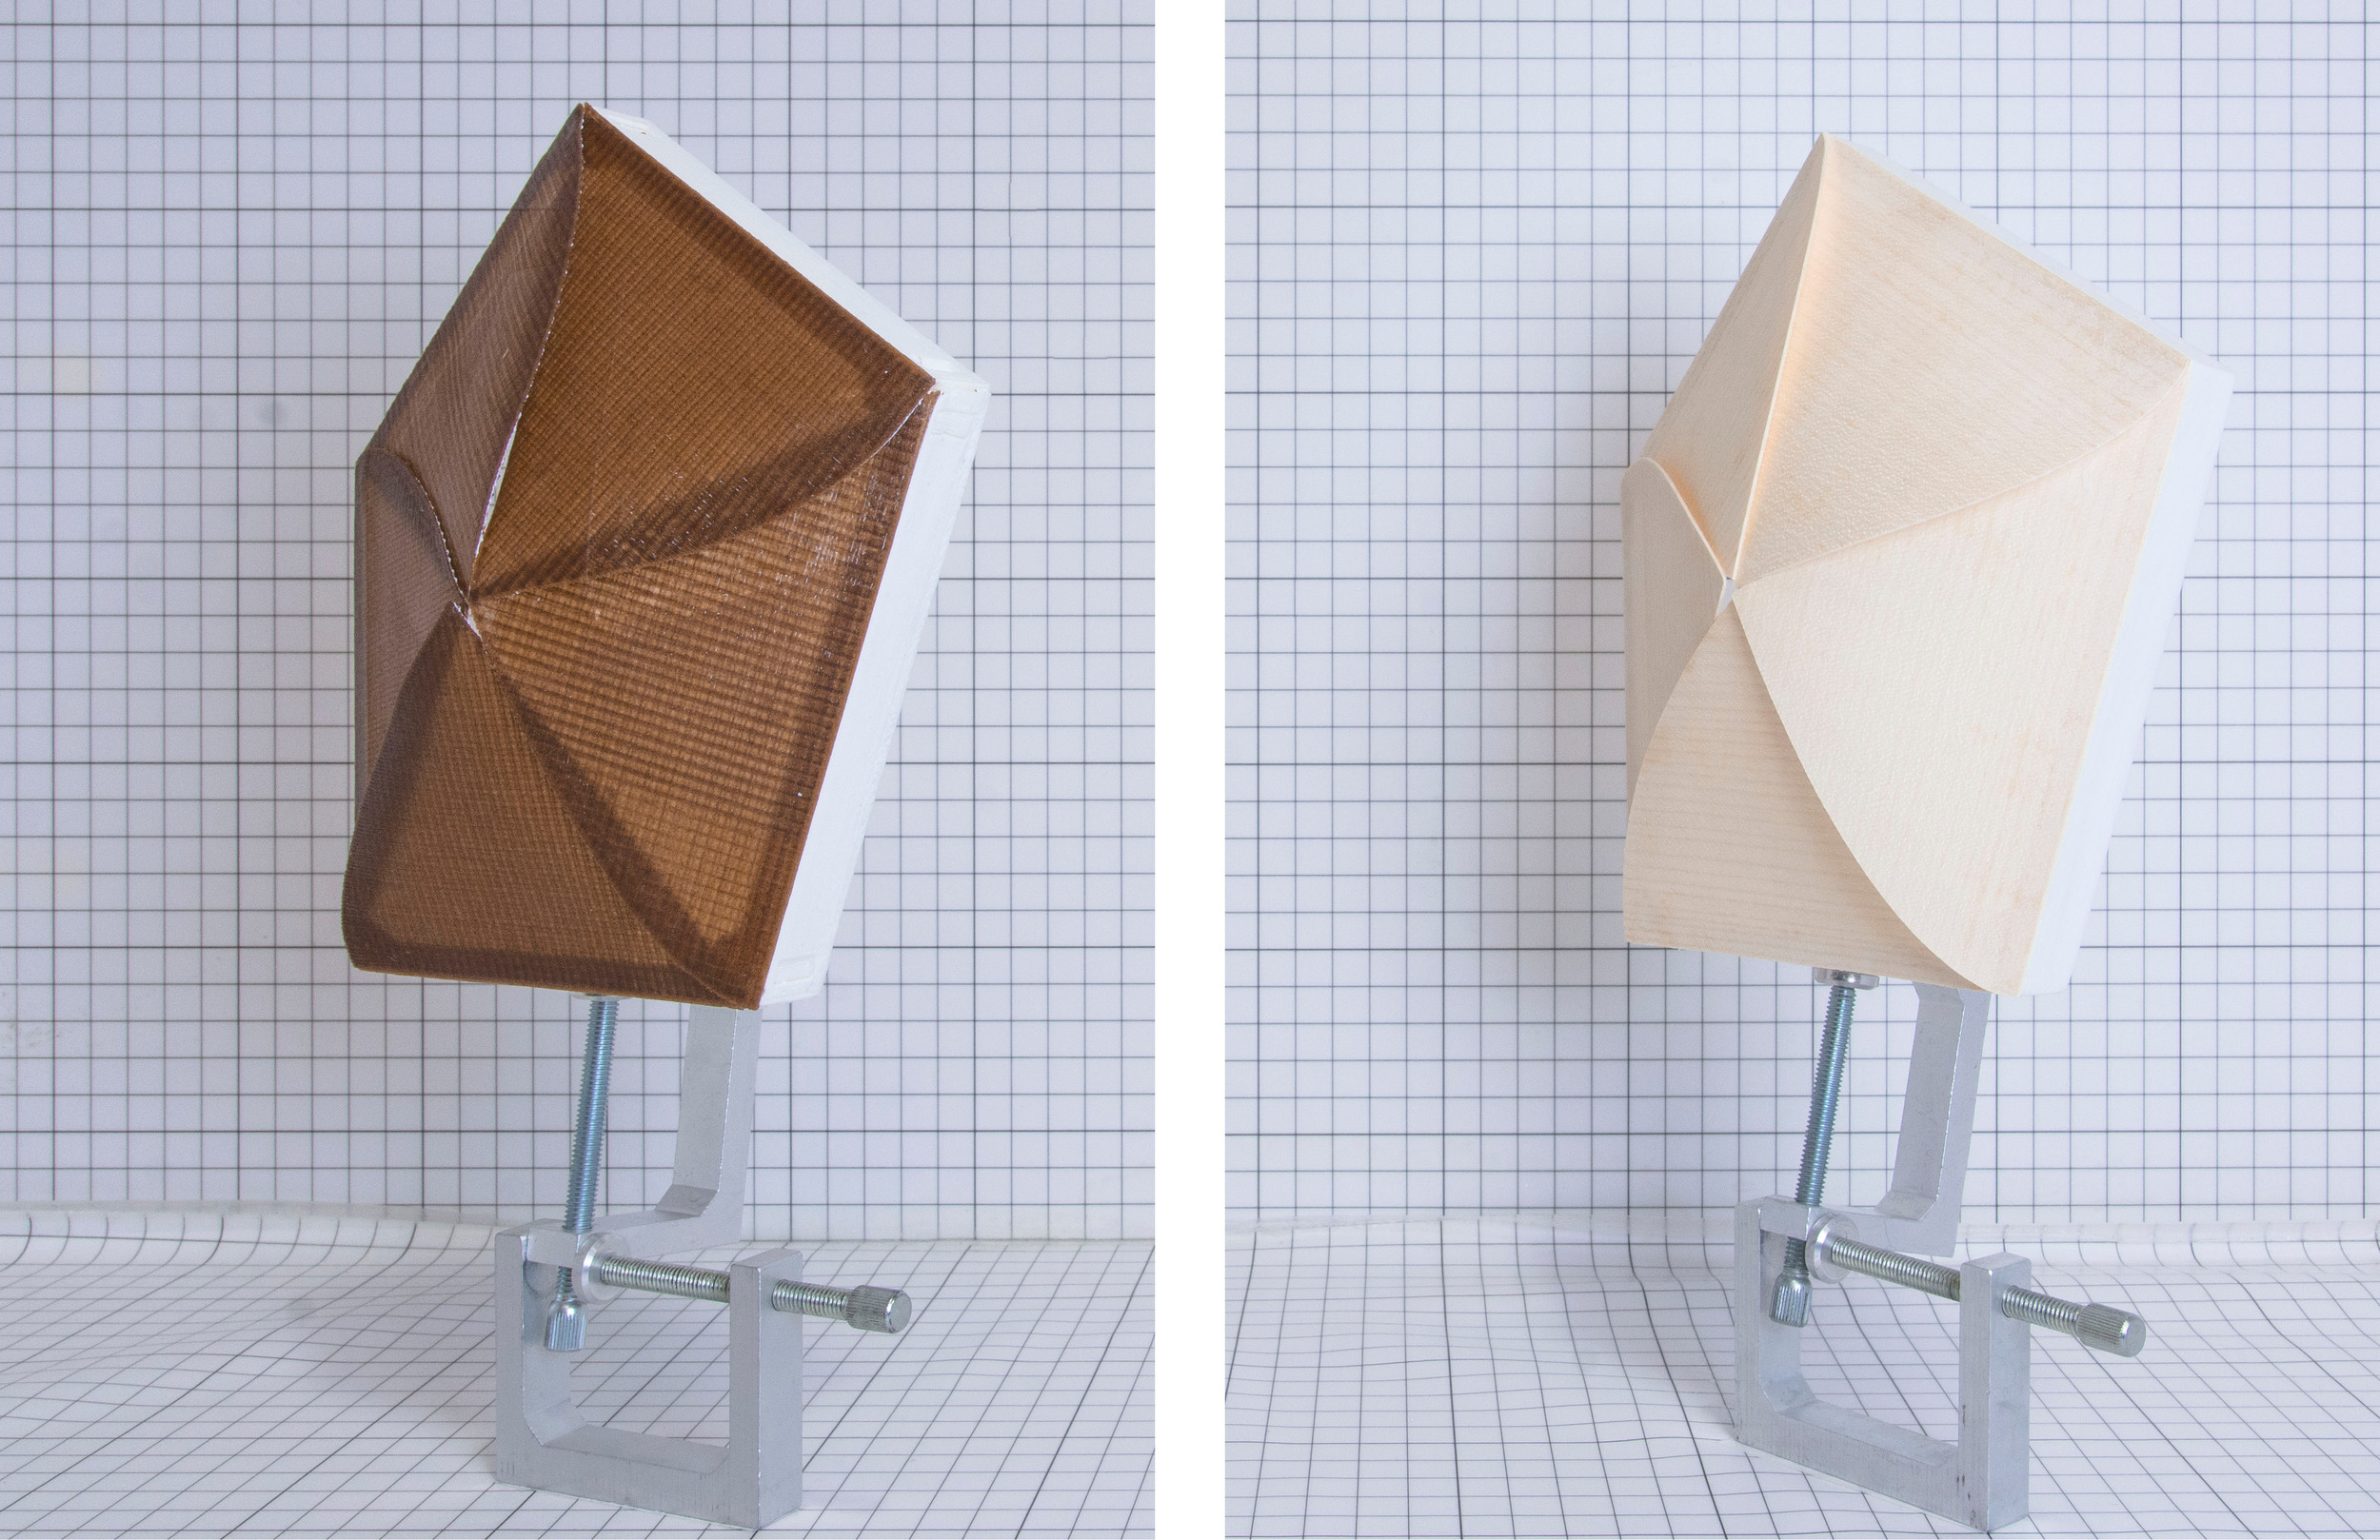 HygroSkin: Meteorosensitive Pavilion An example of climate-responsive architecture. An architectural skin that responds to its environment without relying on elaborate technical equipment.  Instead it uses the reactivity of wood to the moisture content in the air as in nature you see in spruce cones. (by David Correa and Prof. Achim Menges, University of Stuttgart)